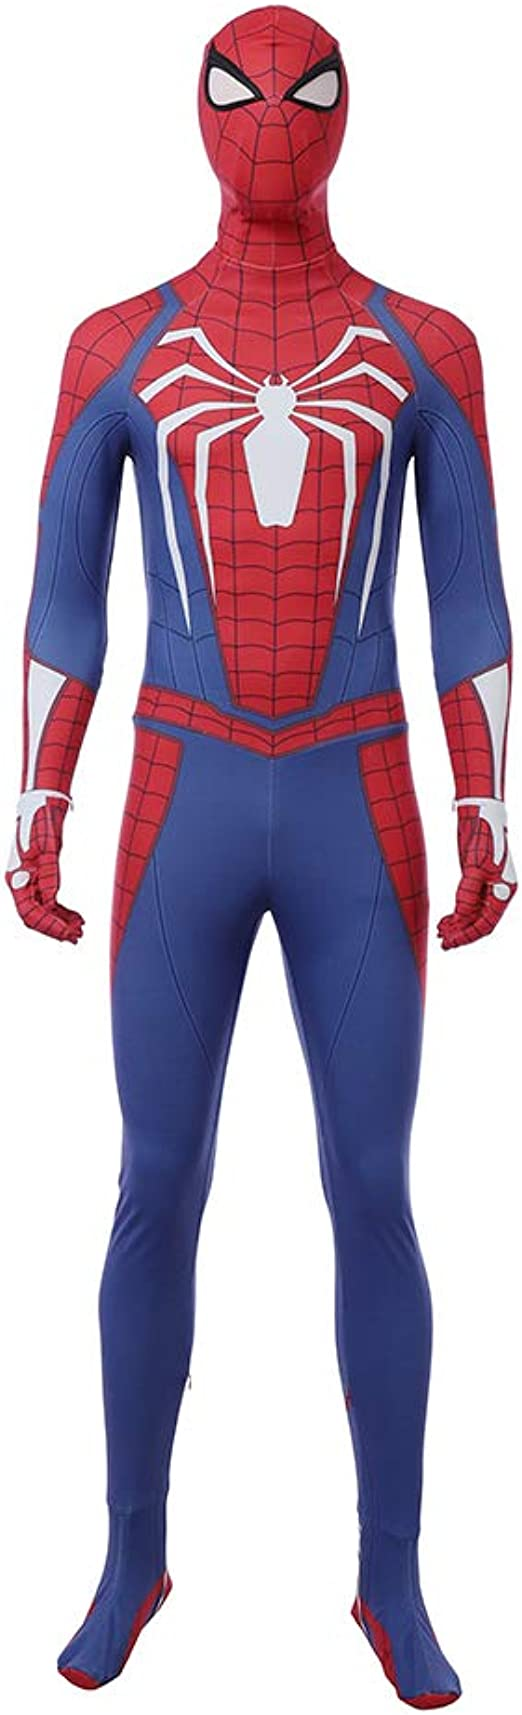 Spider-Man Suit PS4 Classic Spiderman Cosplay Costume For Adult//Kids